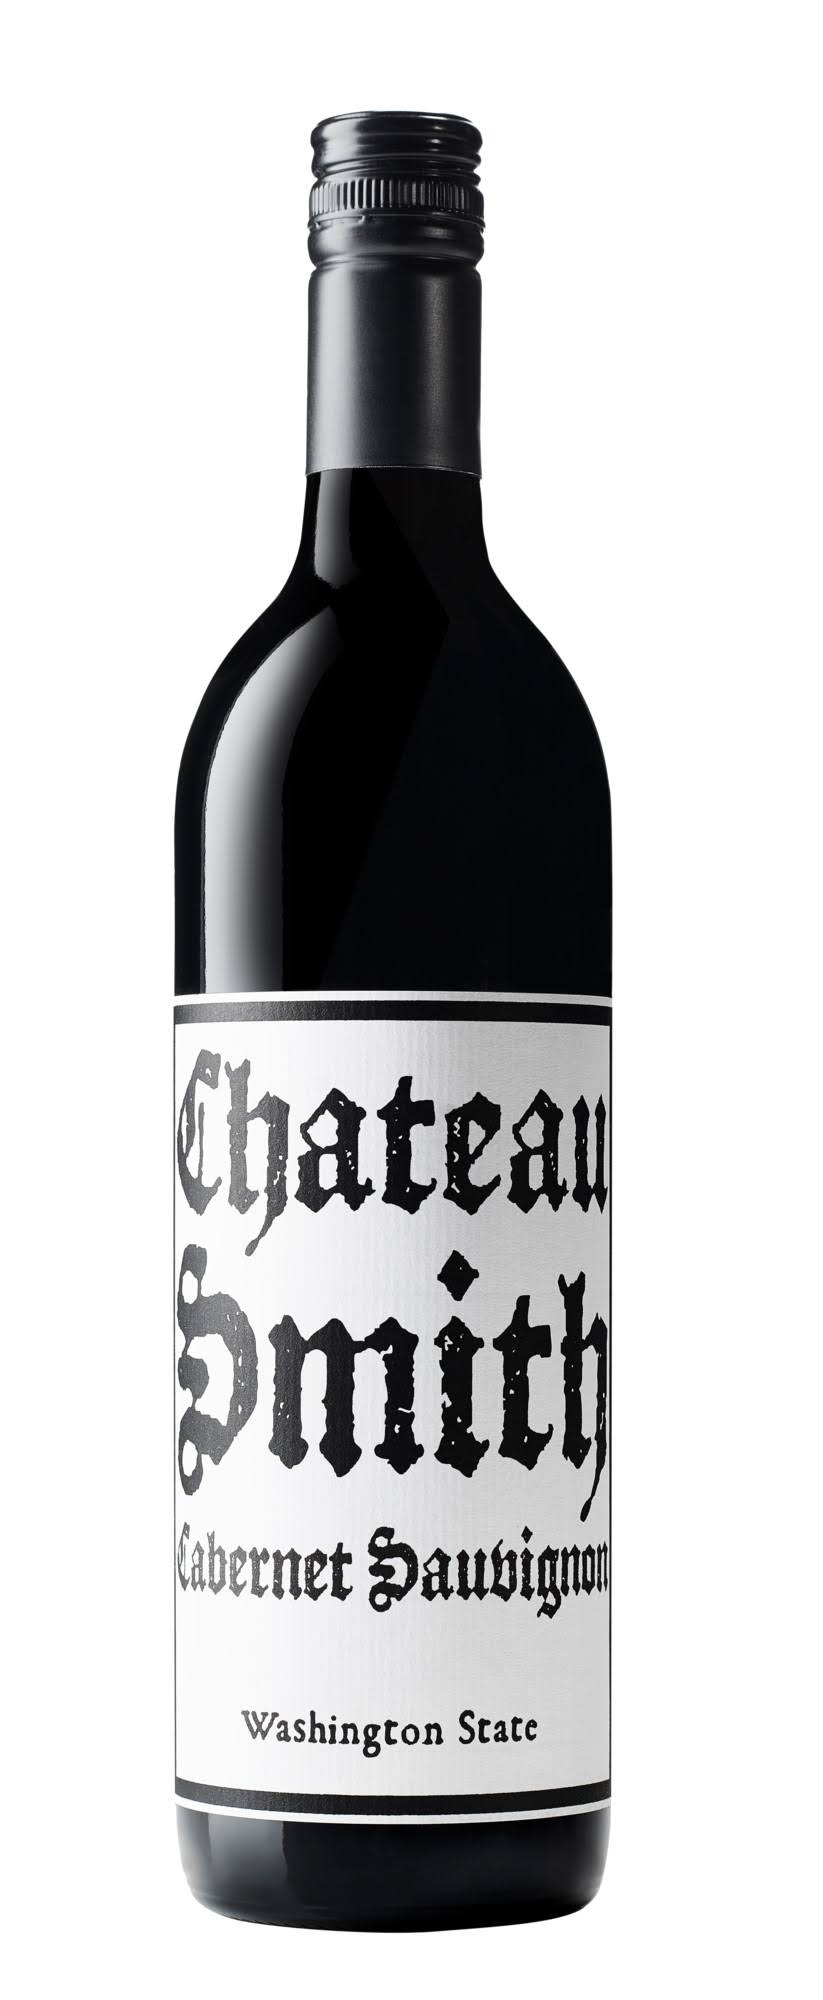 Charles Smith Cabernet Sauvignon - Columbia Valley, USA